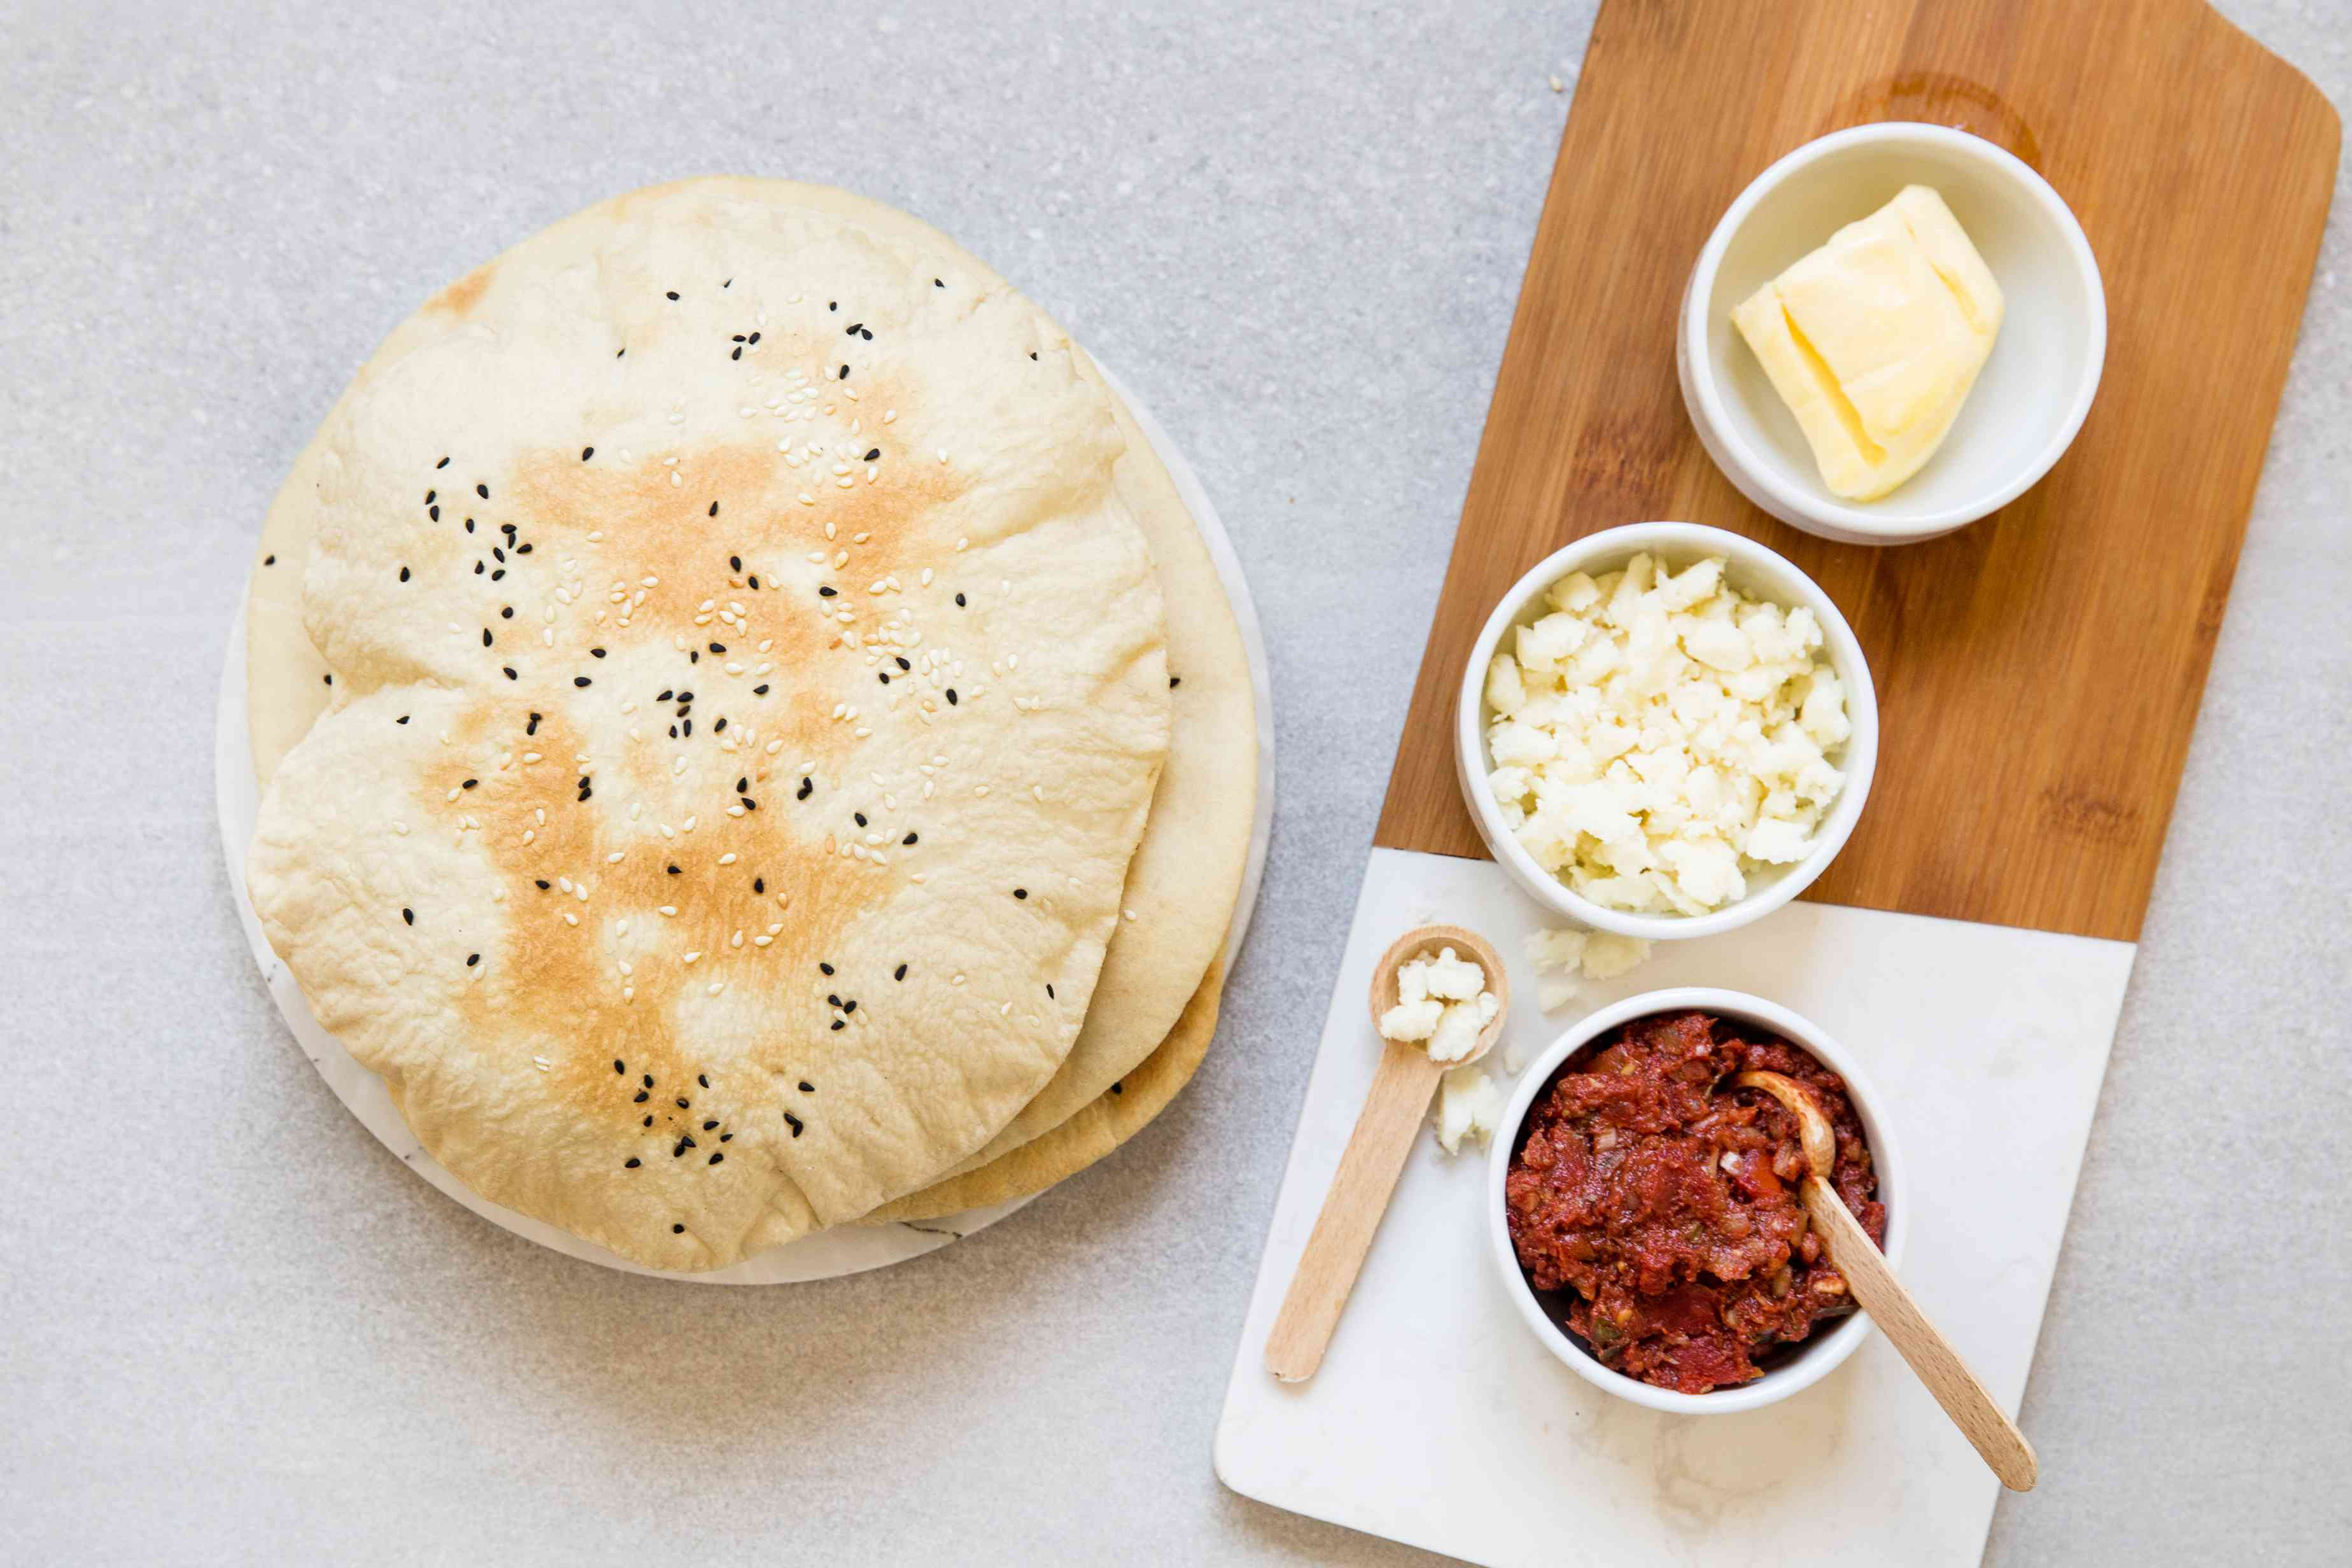 Authentic Turkish Lavas Puff Bread with toppings